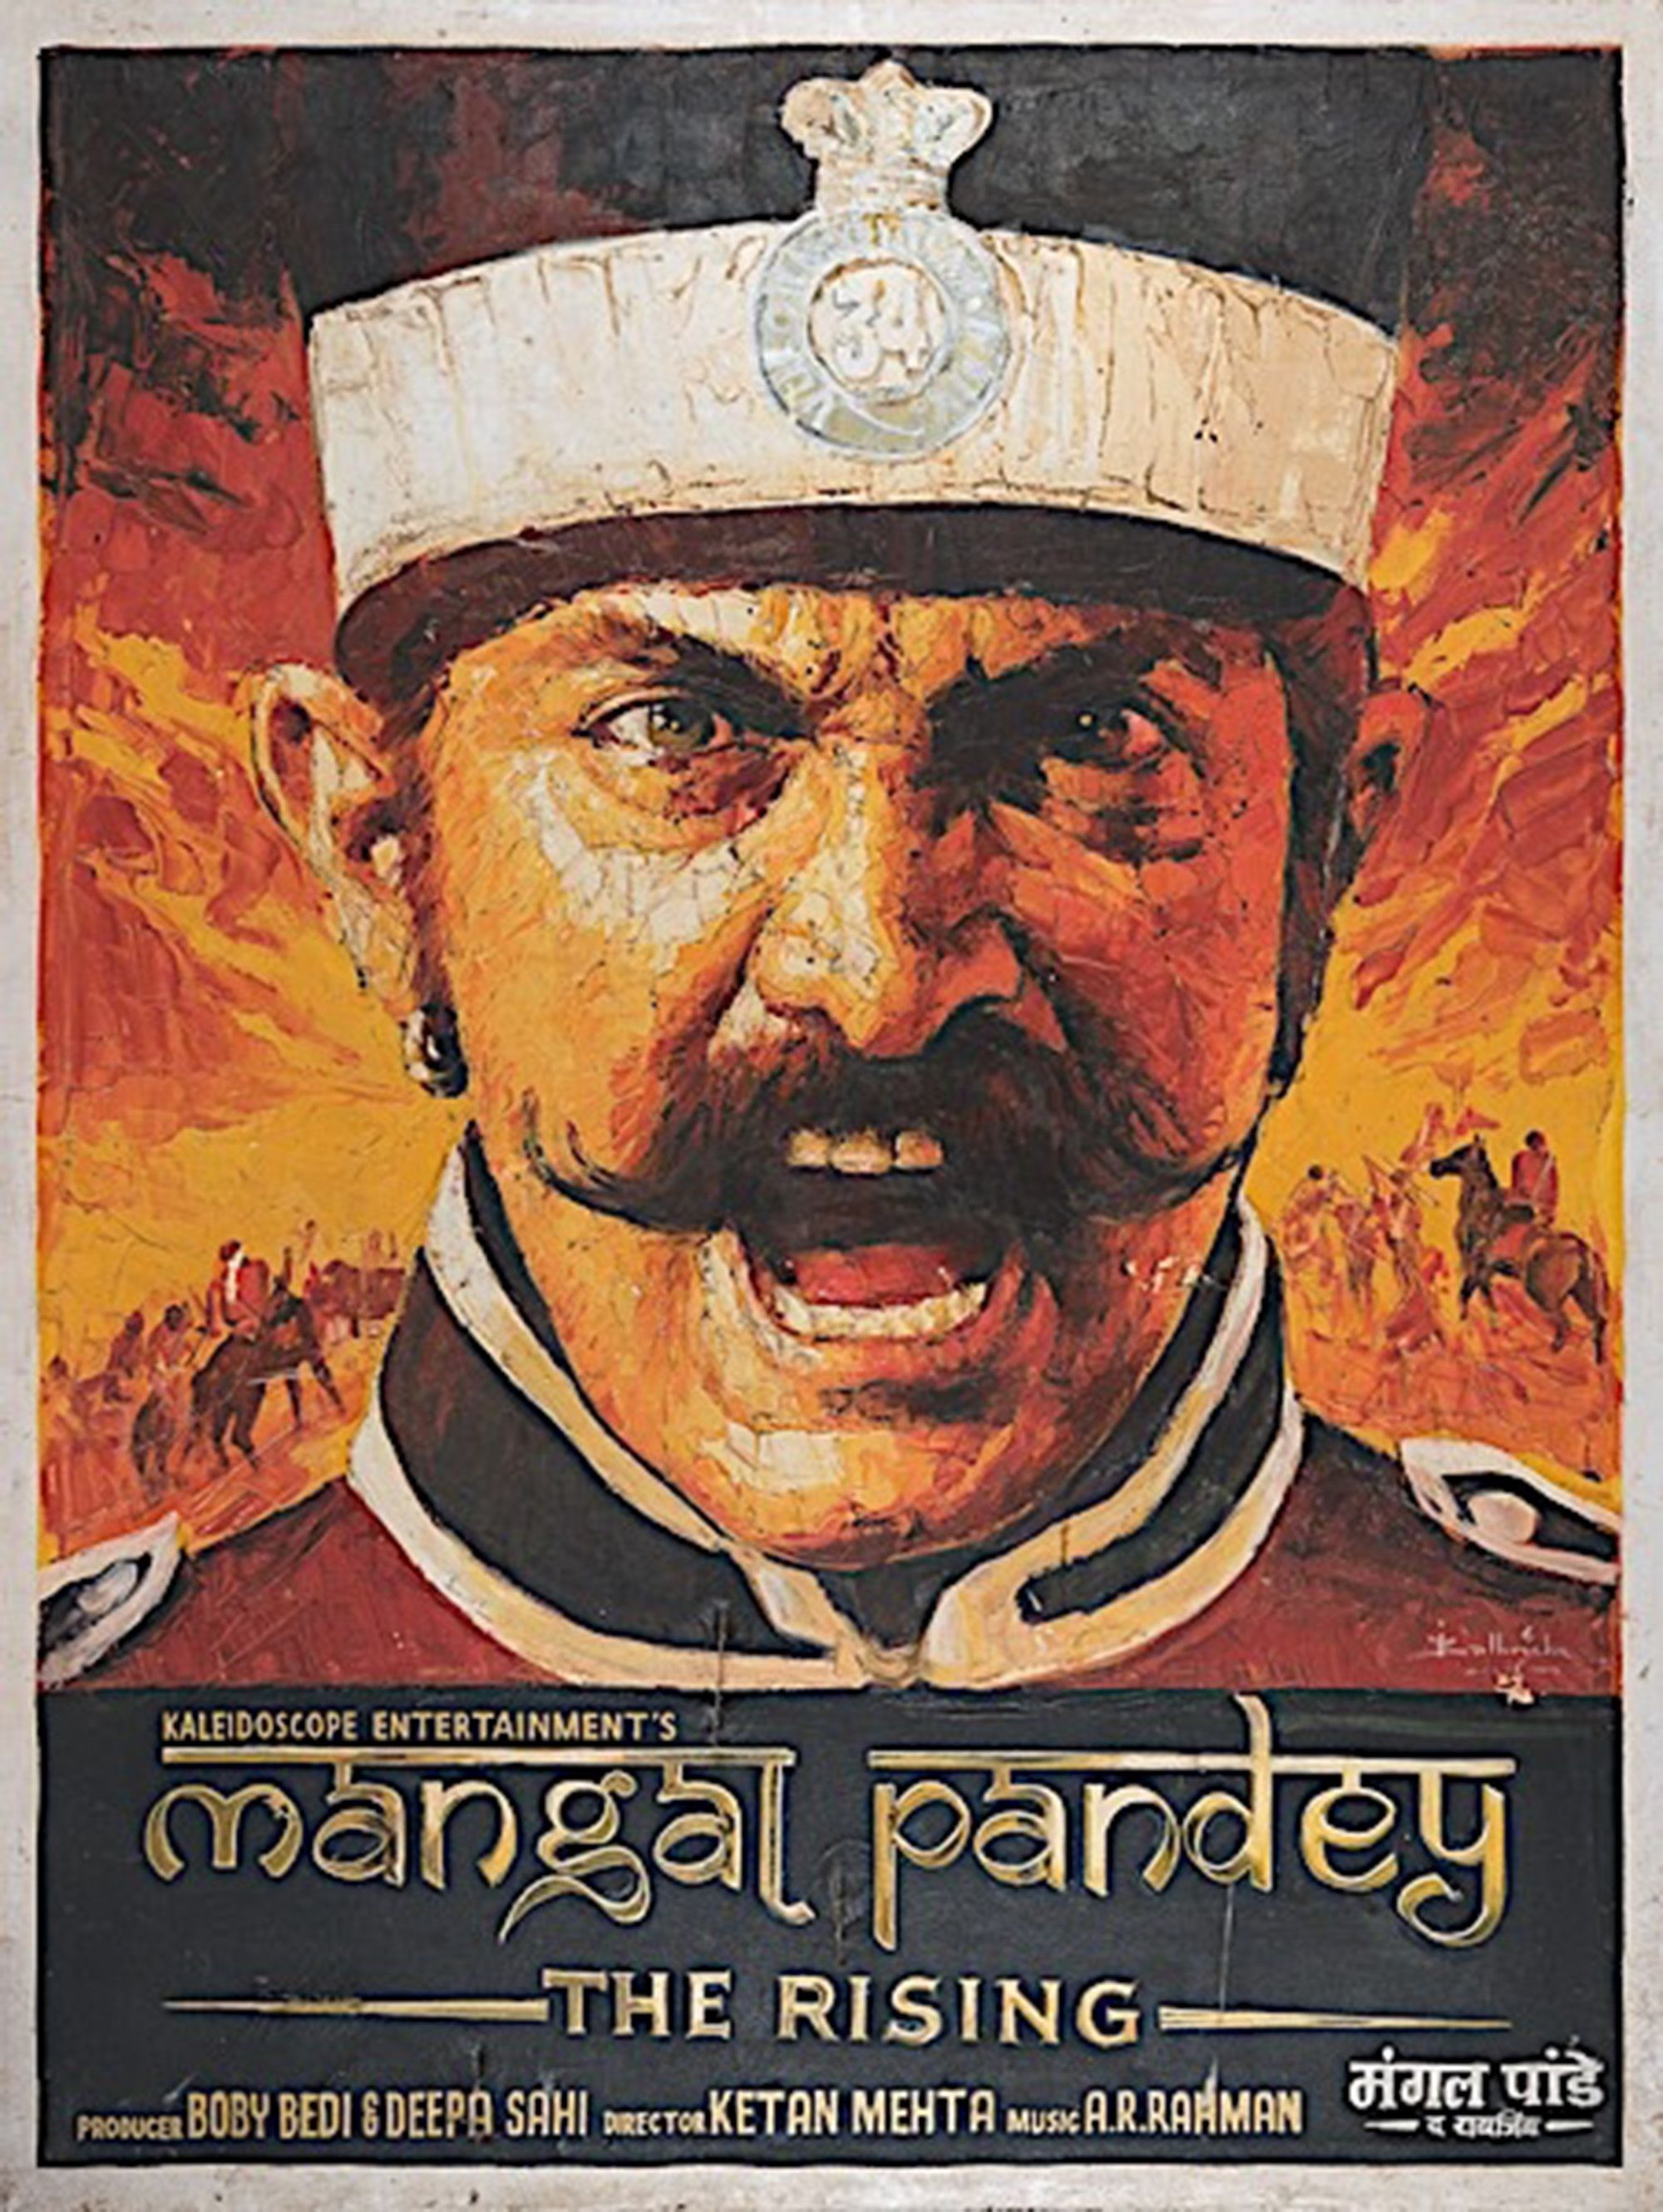 Mangal Pandey poster paint of cardboard … Poster, Indian